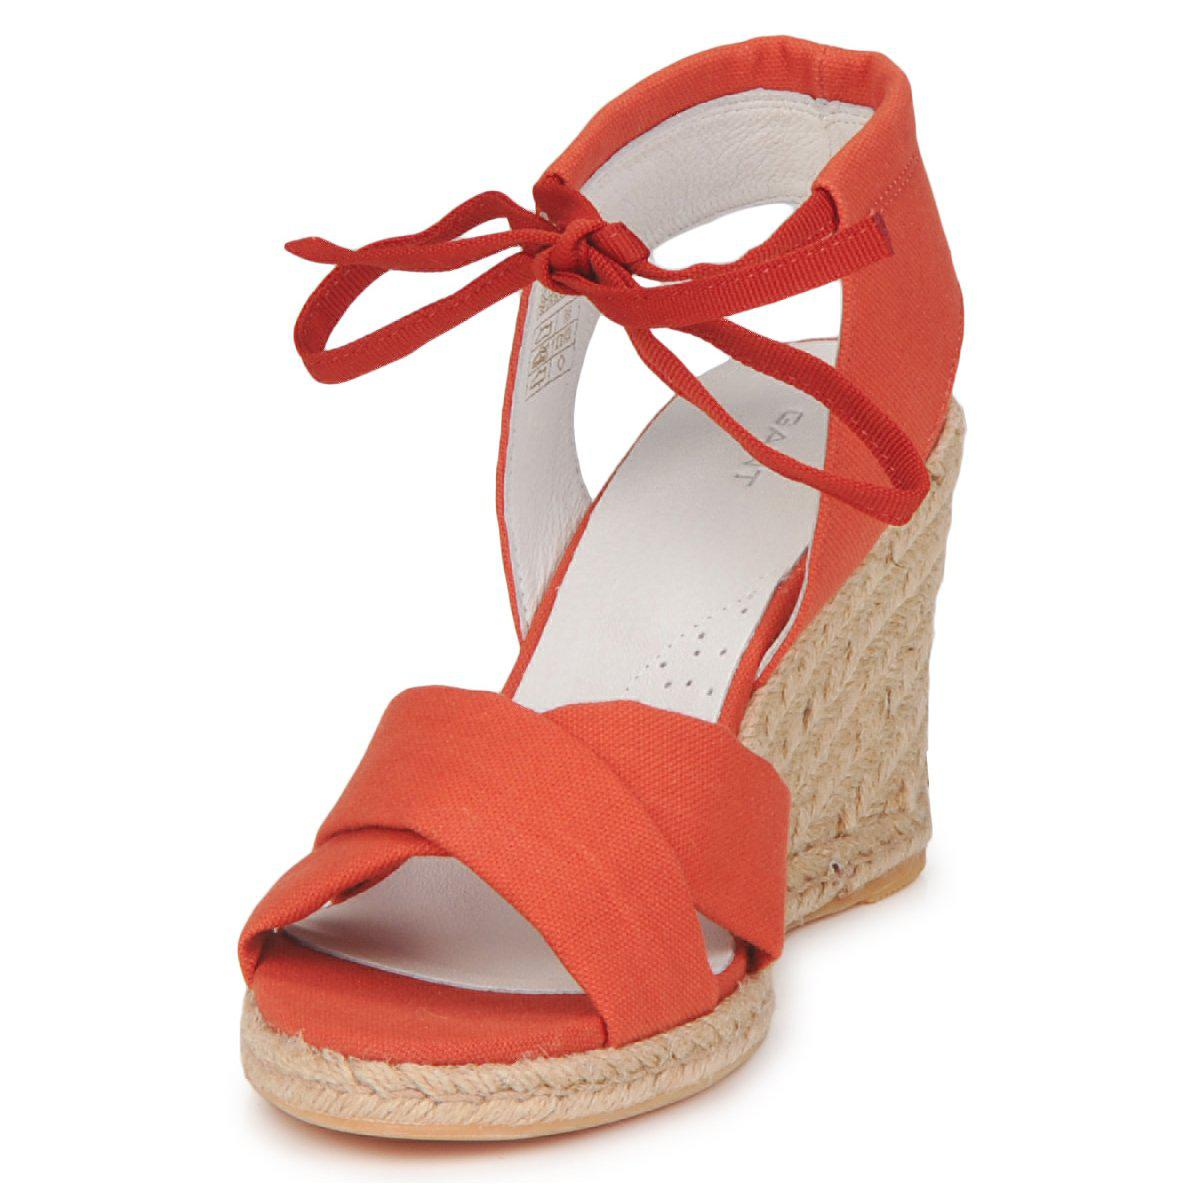 GANT ENVIE women's Sandals in From China Free Shipping u4PfoEH